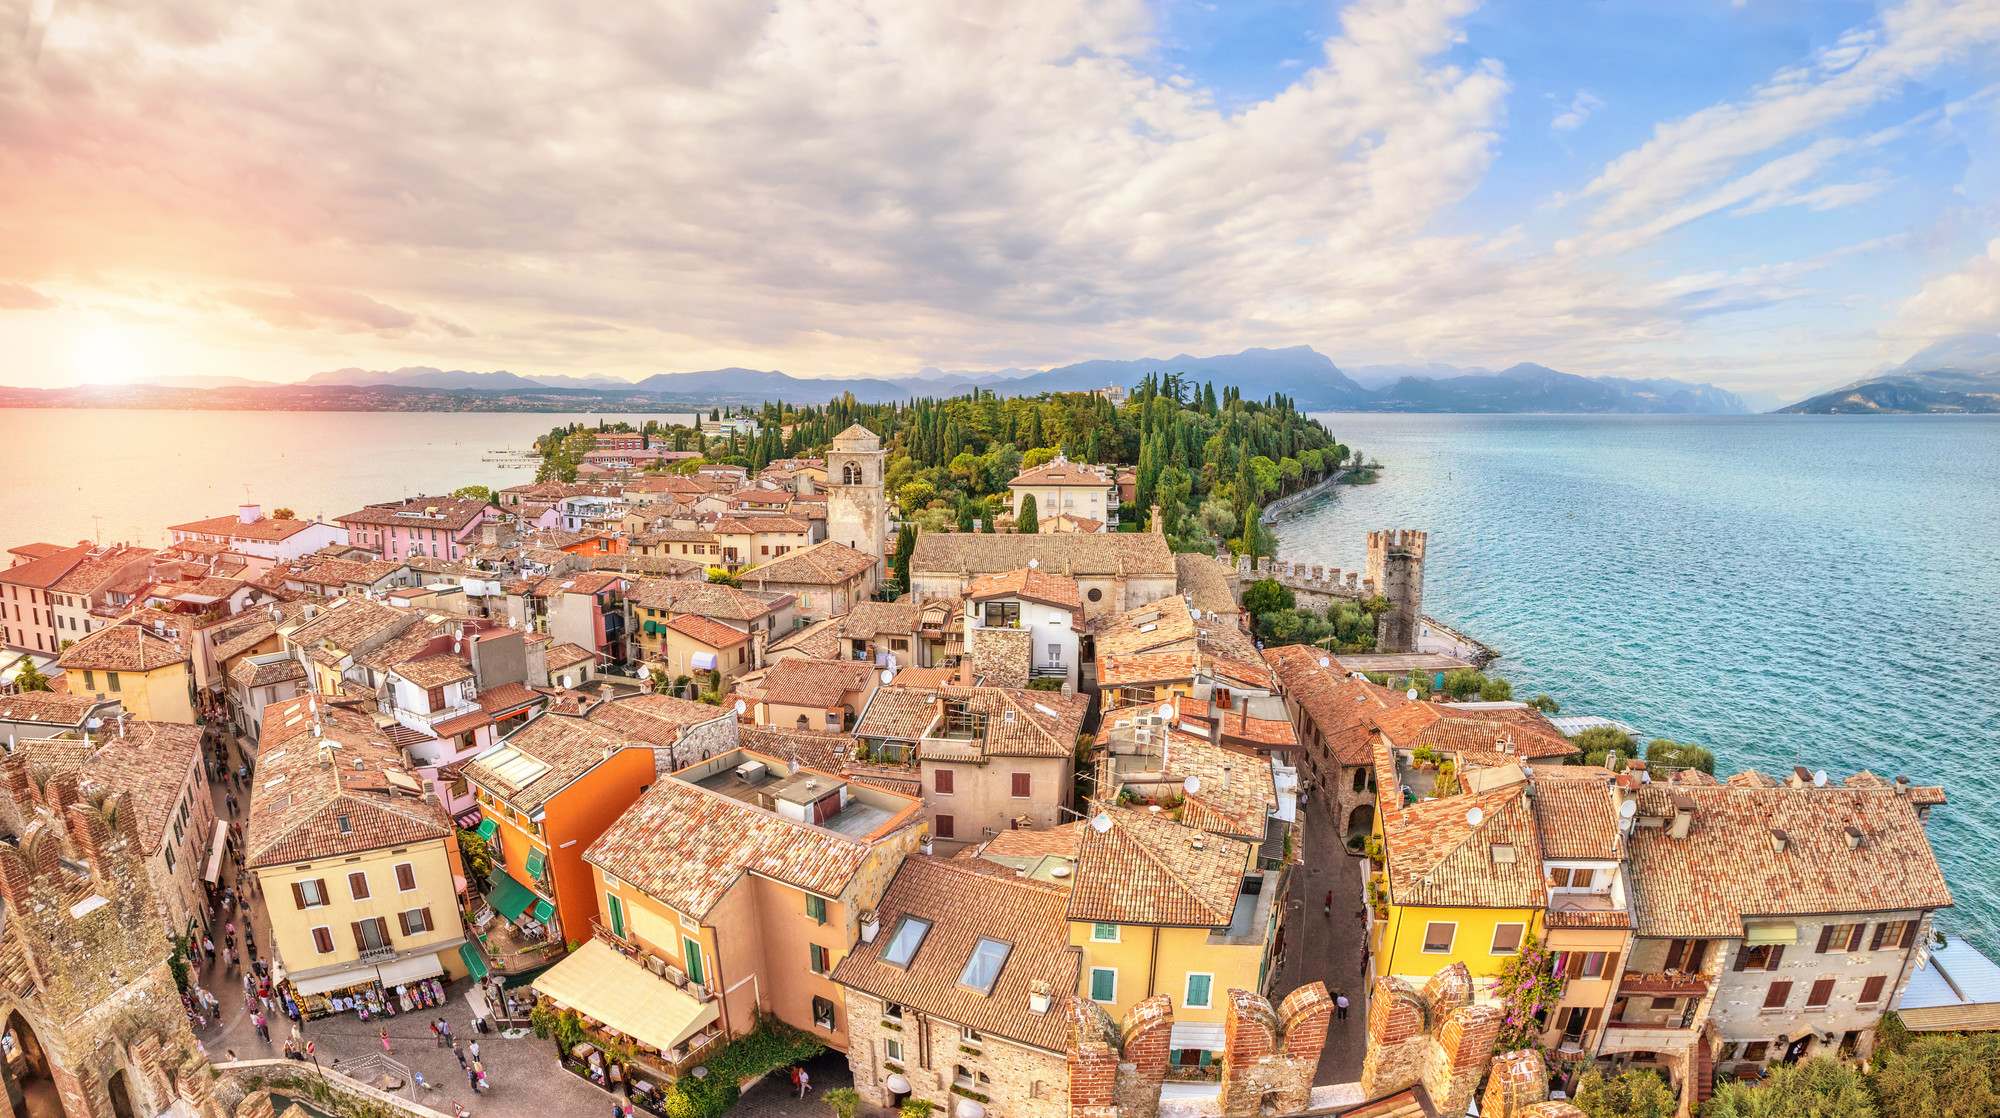 Panoramic view of the historical town Sirmione. Best towns and spas to visit in lake garda, SpaDreams